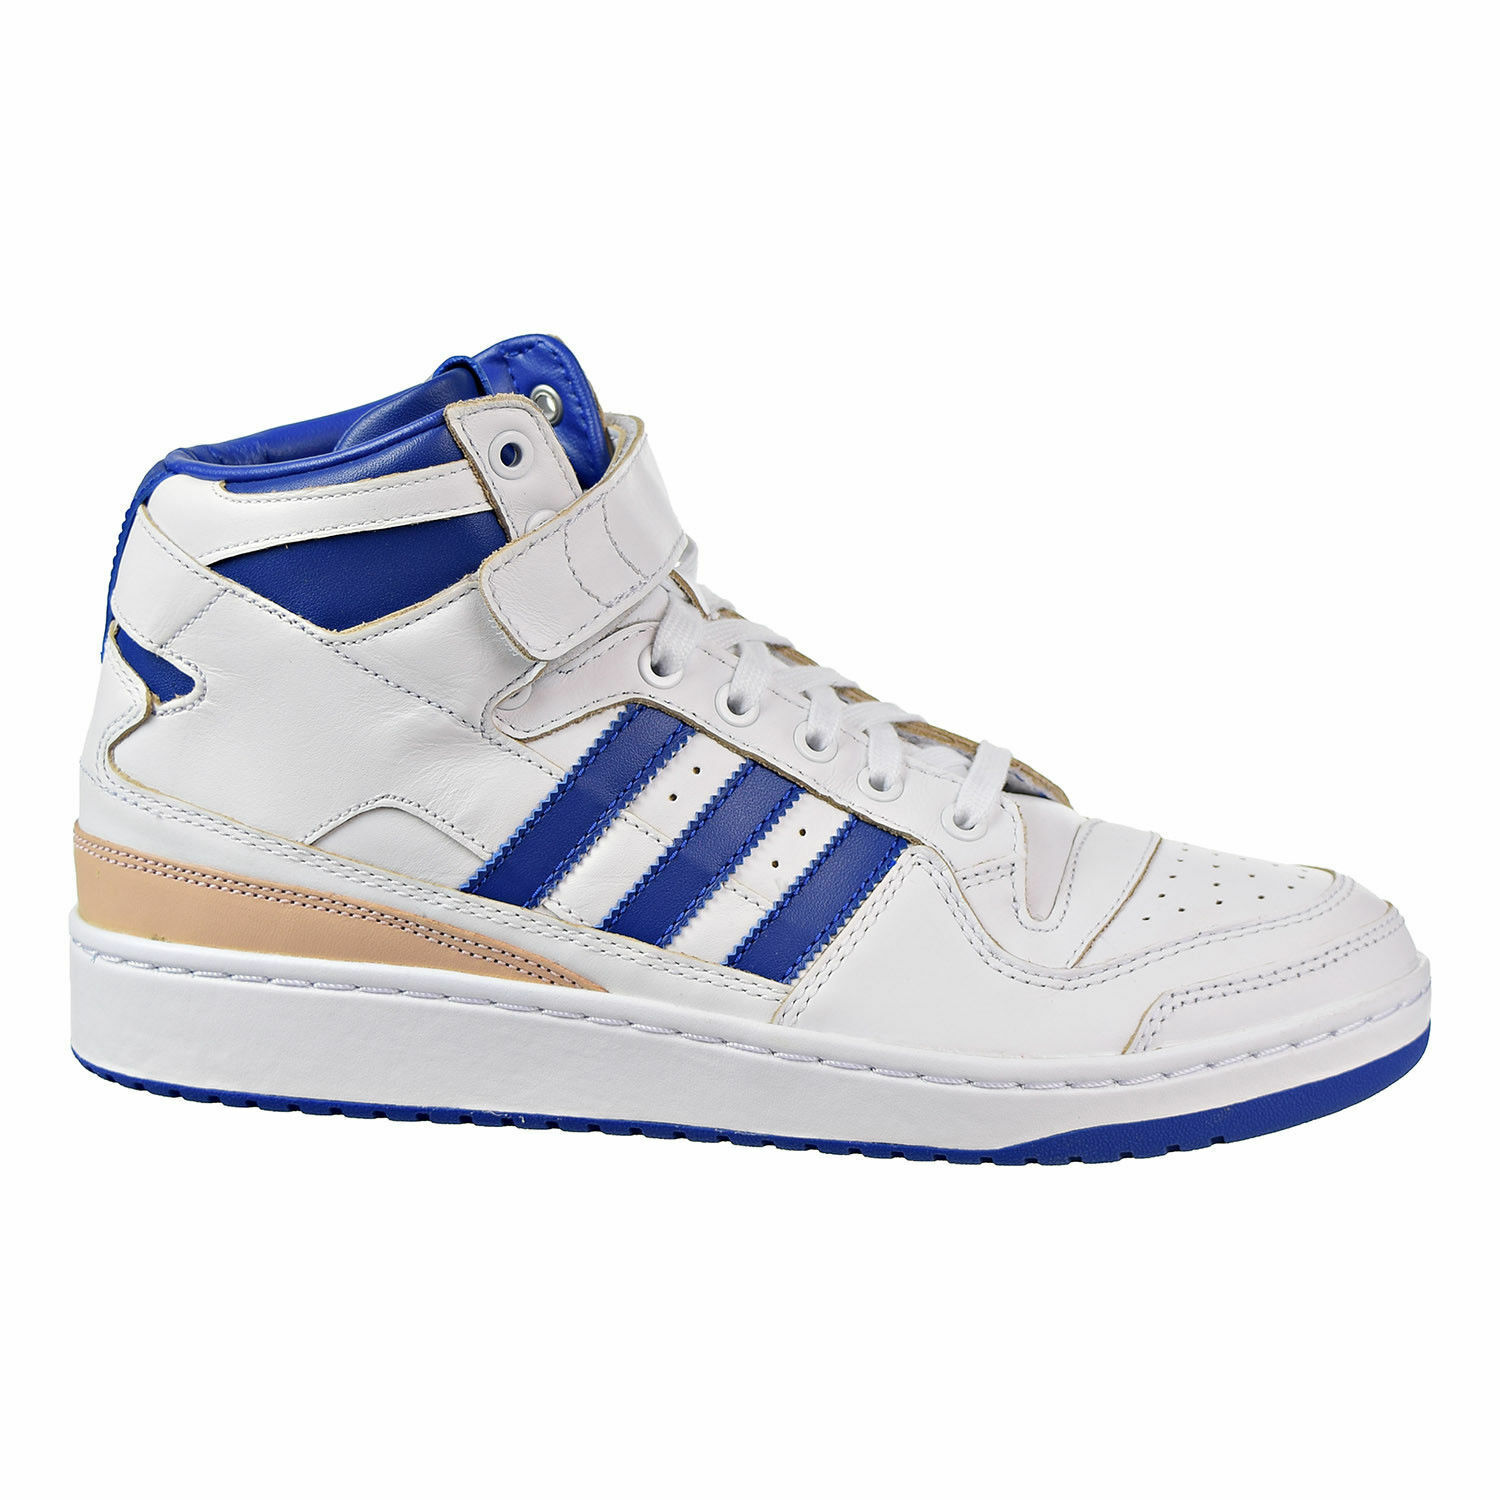 Adidas Forum Mid (Wrap) Men's shoes White BY4412 Size US 11 D Retail  160